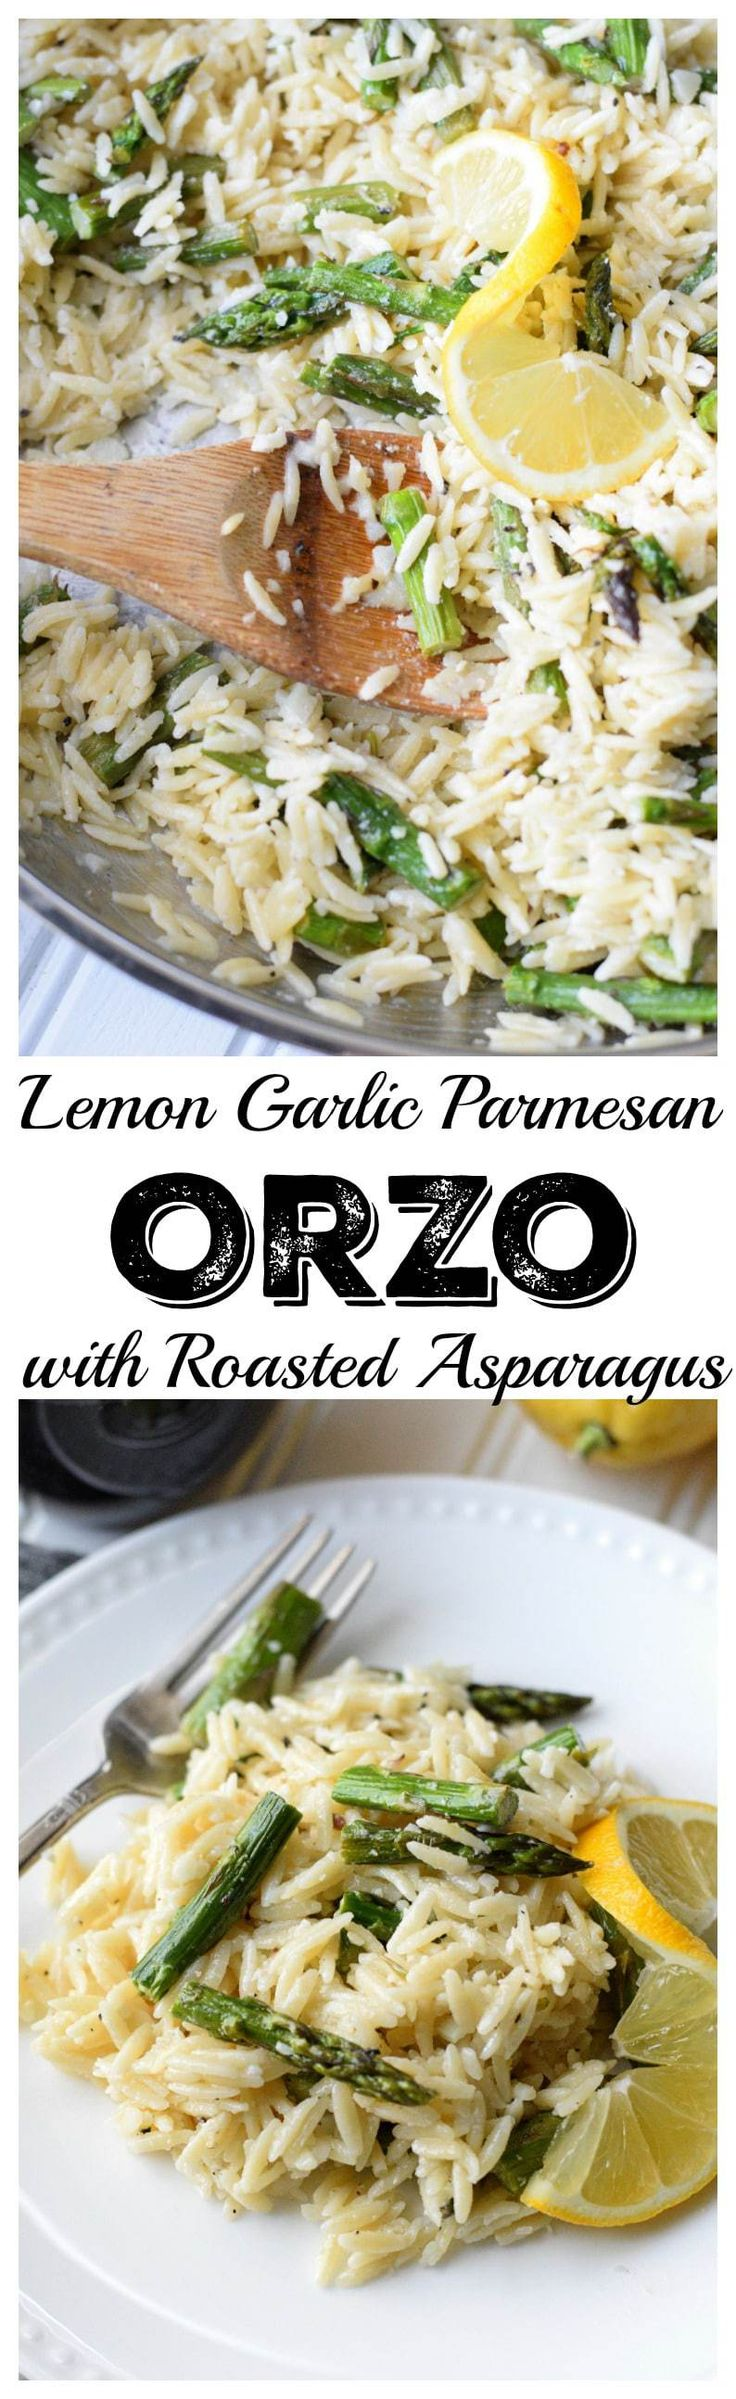 Lemon Garlic Parmesan Orzo with Roasted Asparagus makes a great side dish that screams Springtime. (Lemon Butter Asparagus)